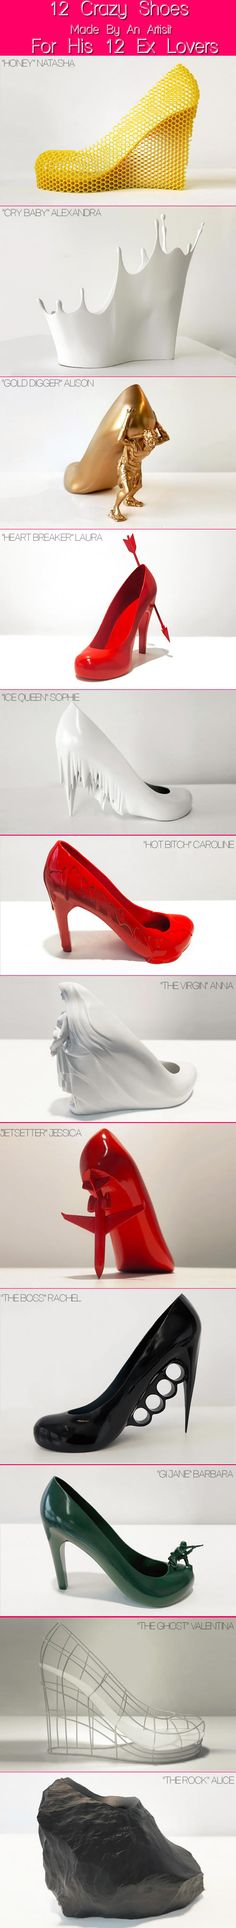 Artist Creates 12 Shoes For 12 Ex Lovers. shoe art, woman shoes, artist creat, new shoes, baby shoes, 12 shoe